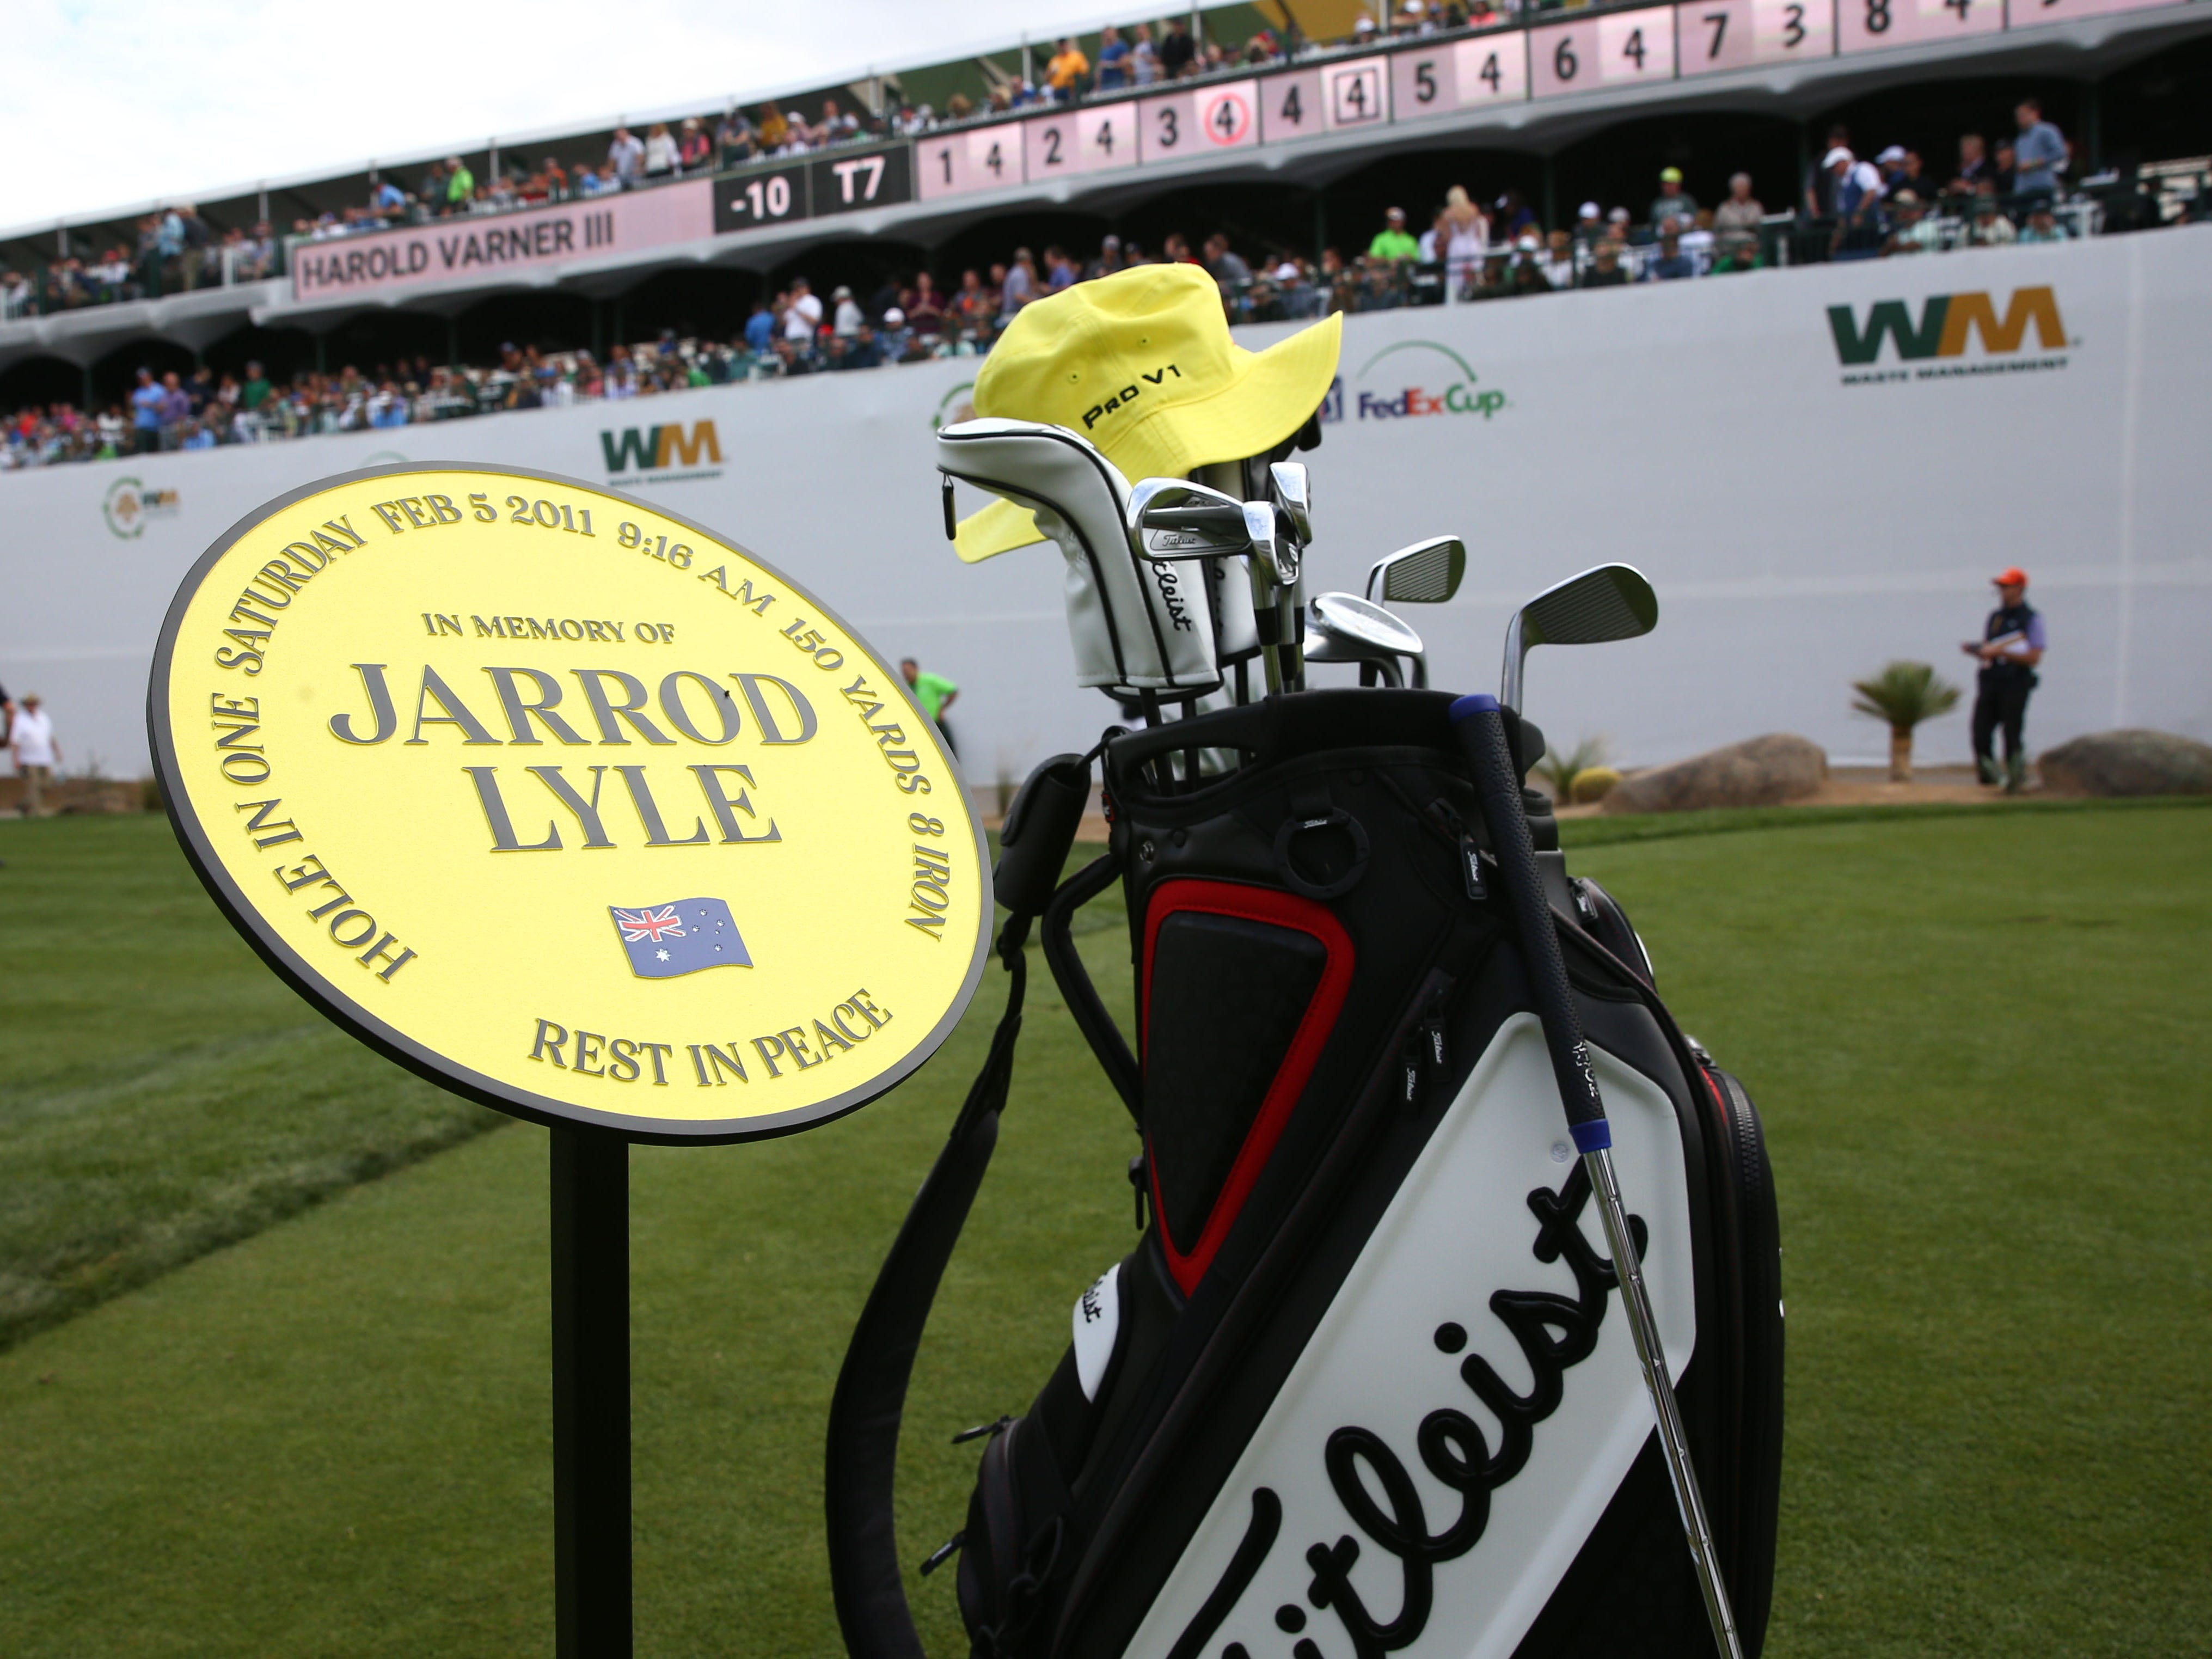 A yellow hat and golf bag on the 16th tee box honors the late Jarrod Lyle, who died last summer from leukemiaduring third round action on Feb. 2 during the Waste Management Phoenix Open at the TPC Scottsdale Stadium Course.